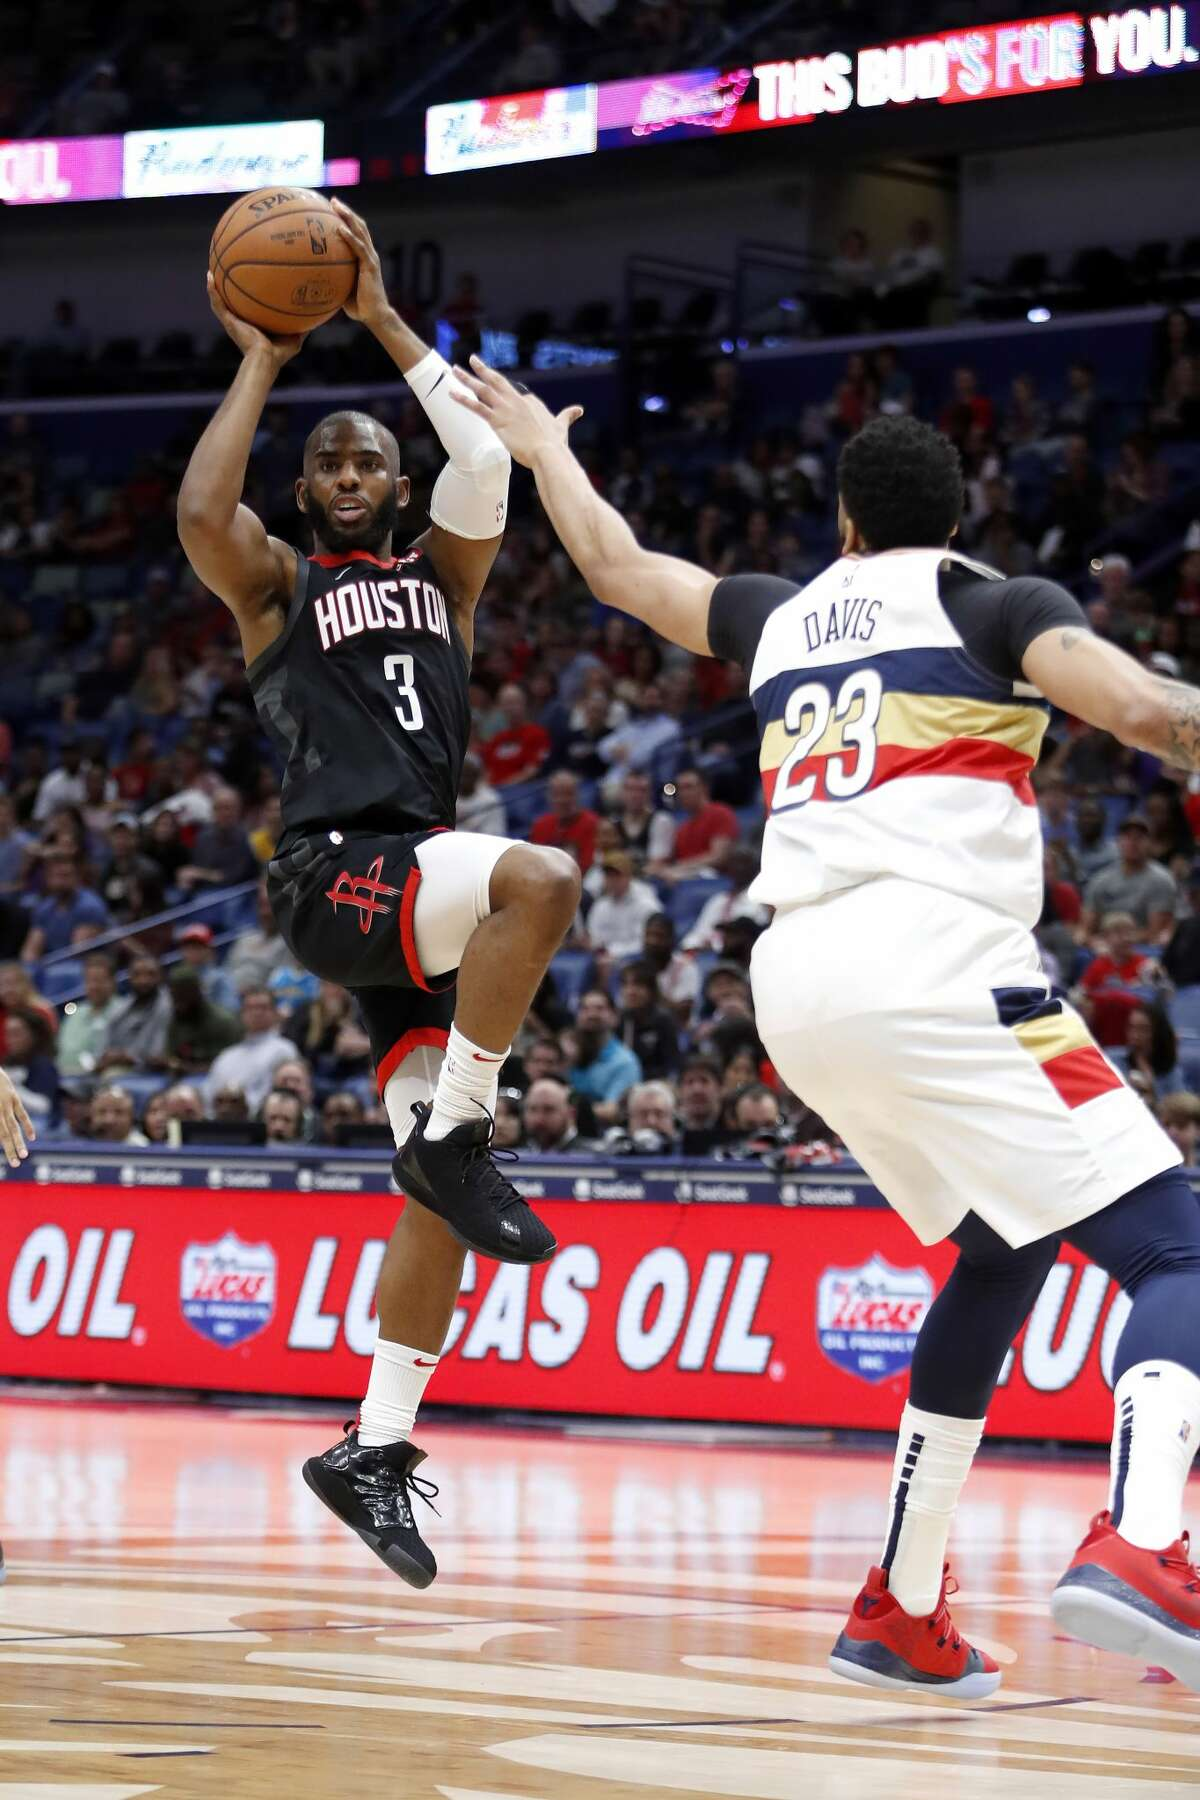 Houston Rockets guard Chris Paul (3) passes the ball in front of New Orleans Pelicans forward Anthony Davis (23) during the first half of an NBA basketball game in New Orleans, Sunday, March 24, 2019. (AP Photo/Tyler Kaufman)